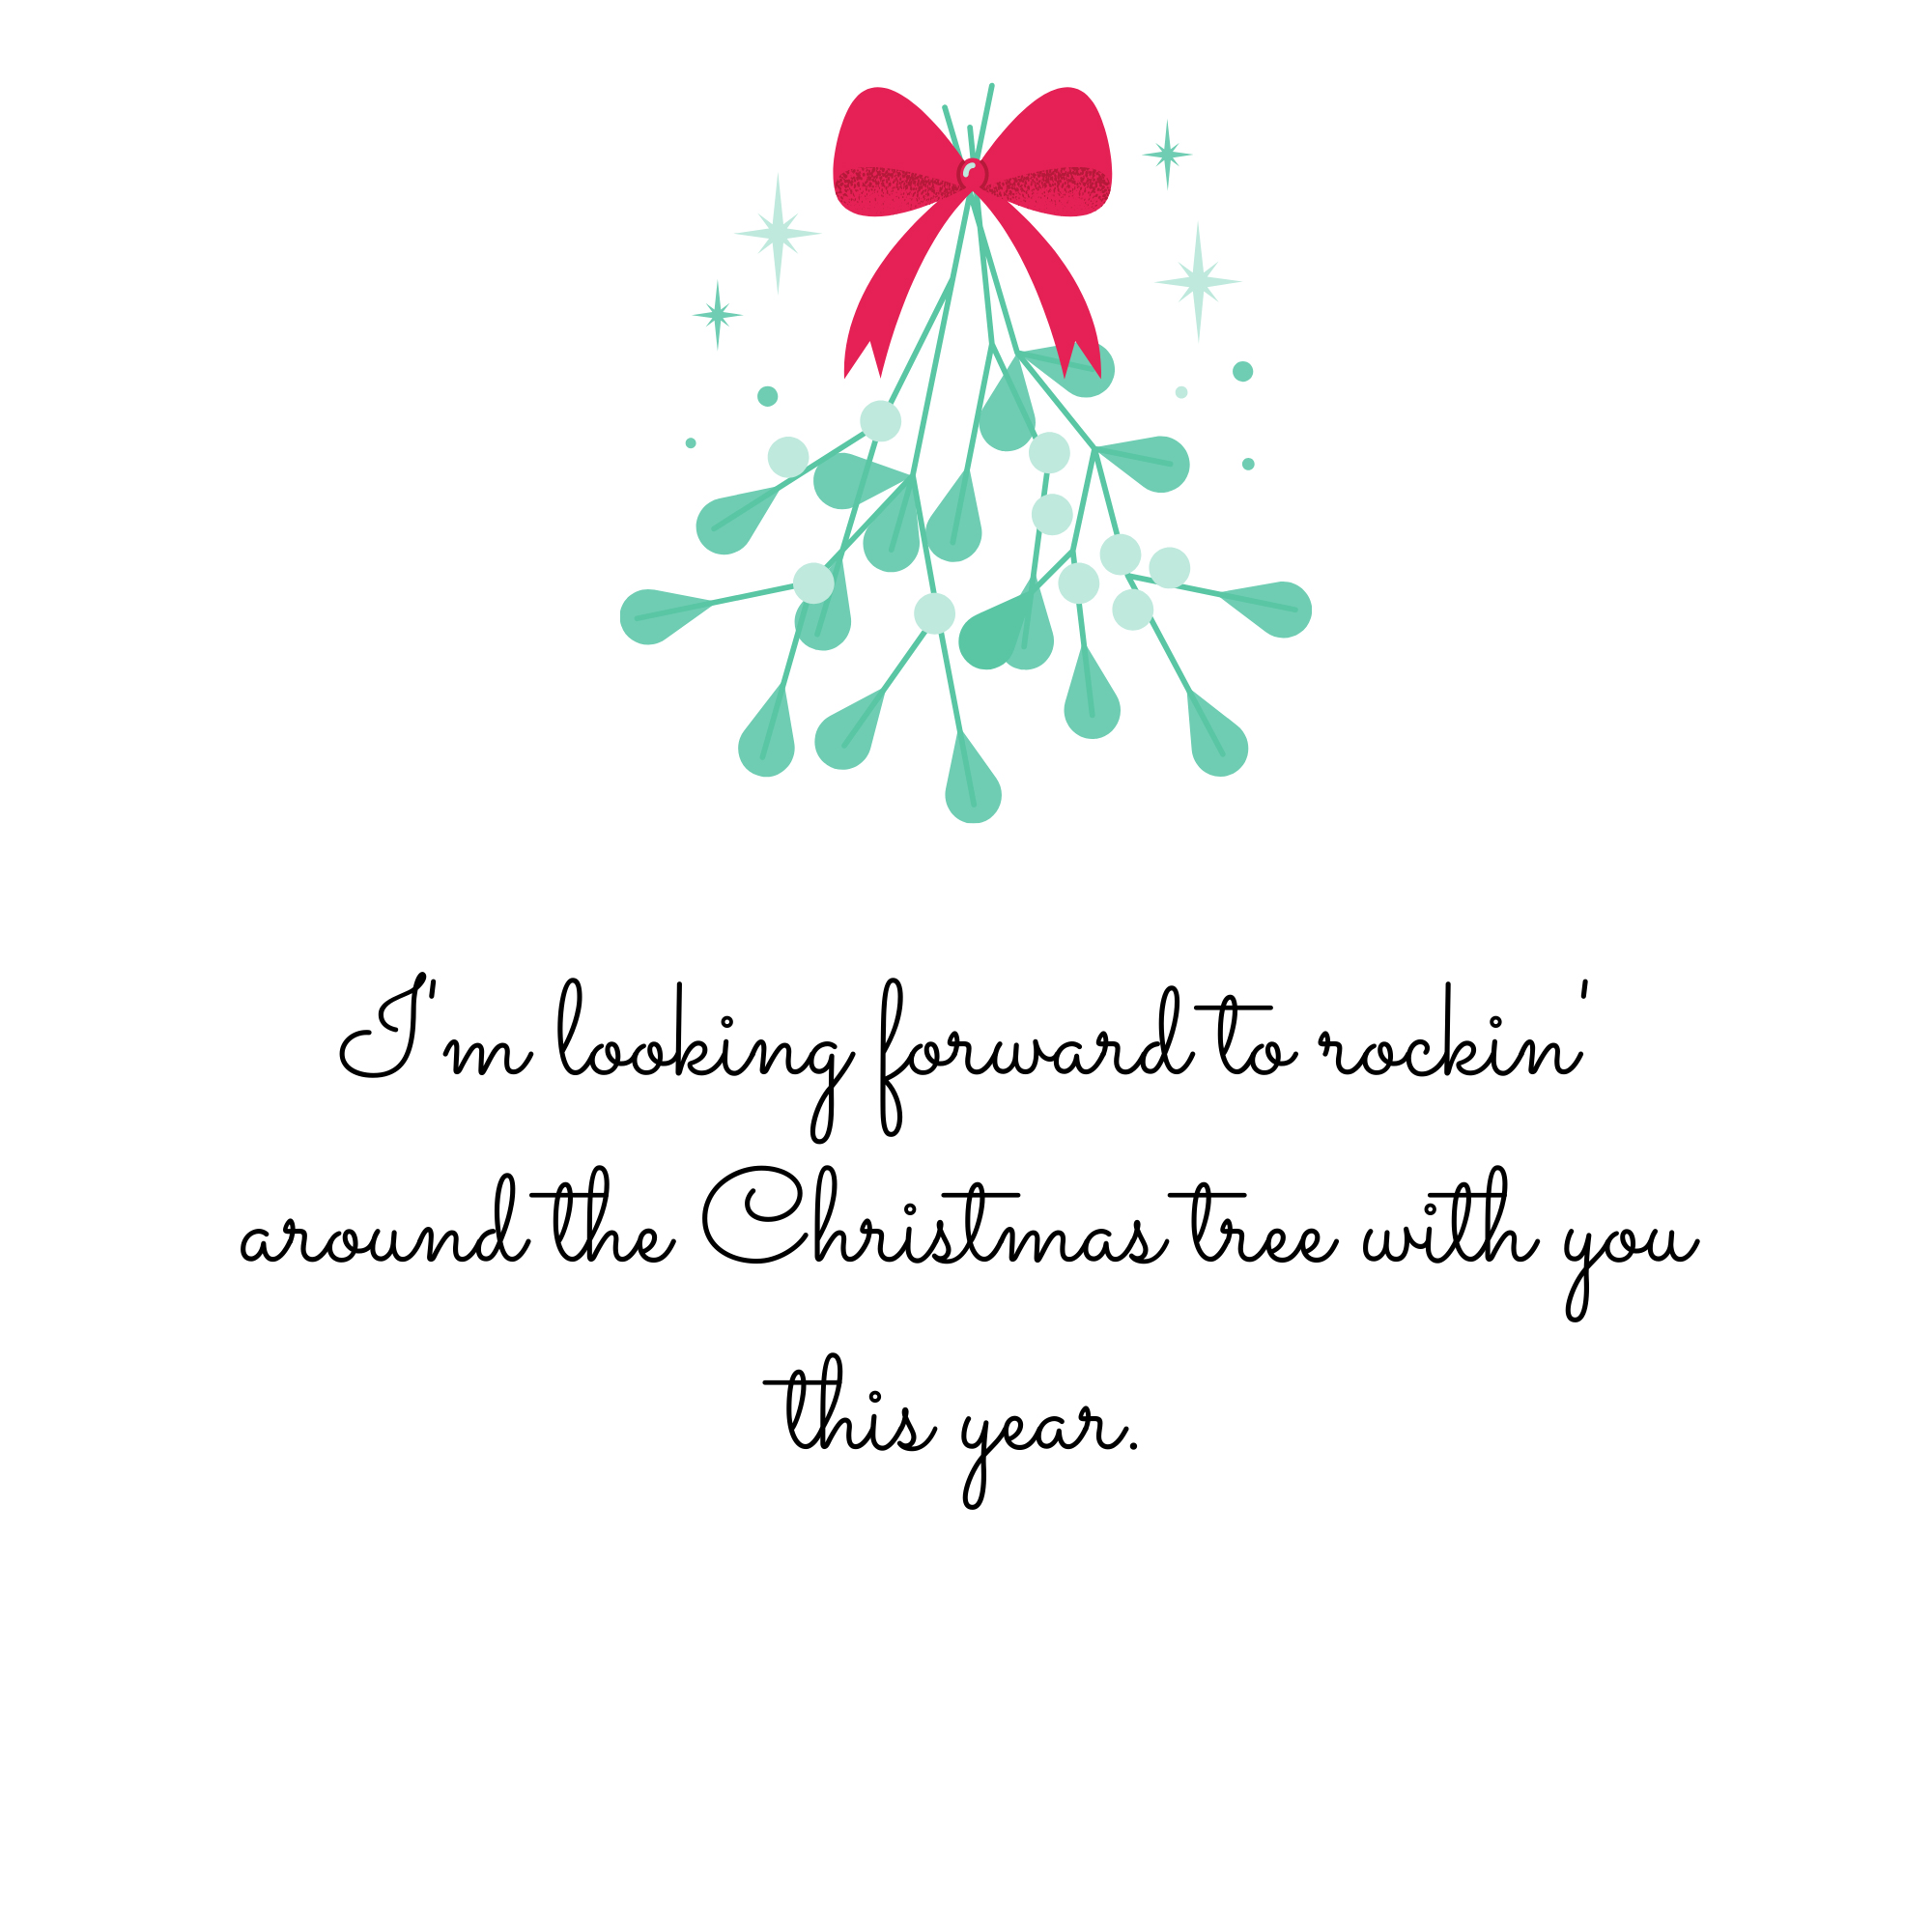 I'm looking forward to rockin' around the Christmas tree with you this year.